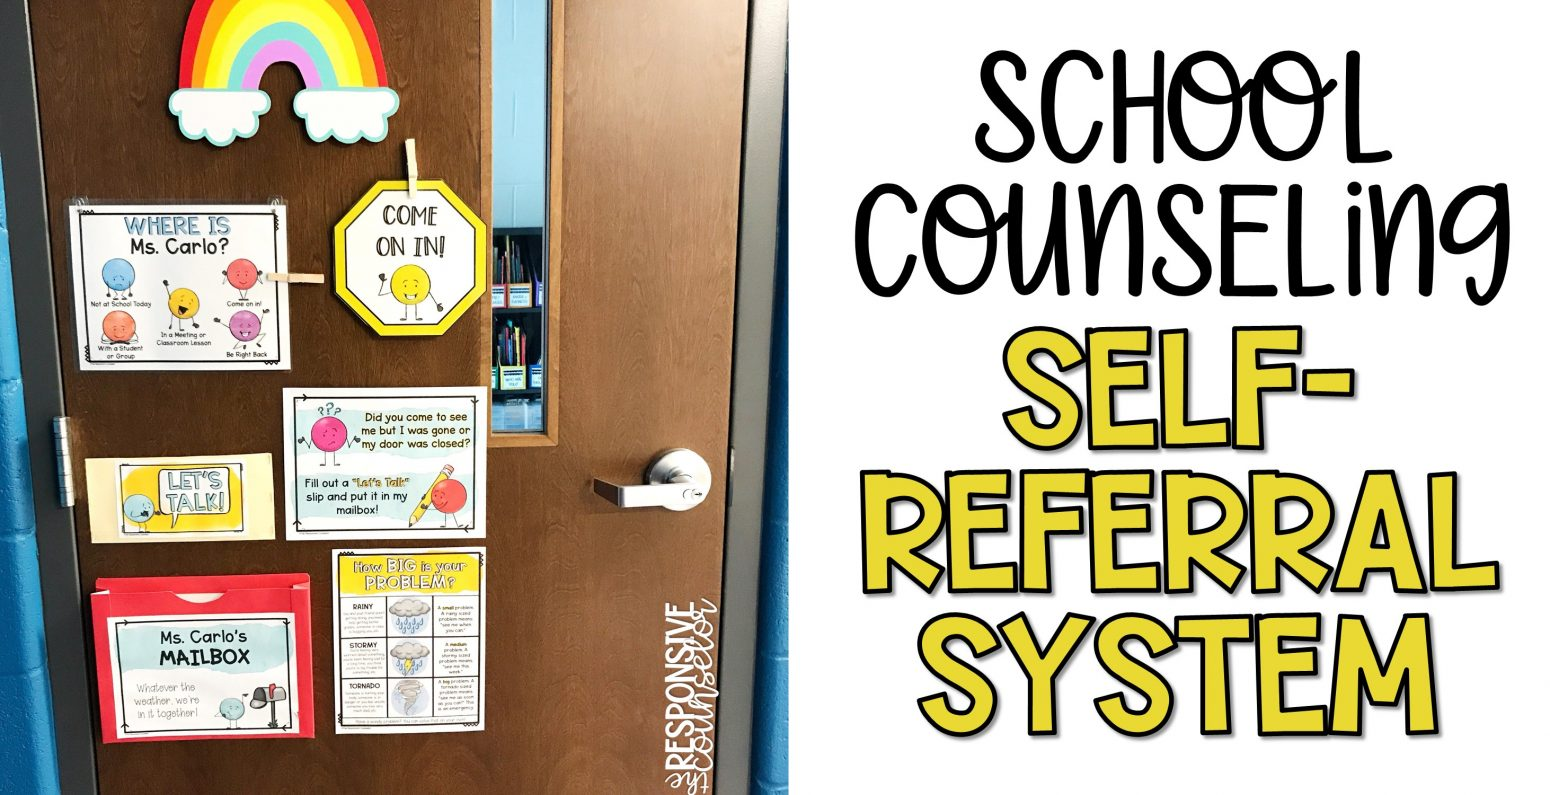 school counseling self-referral system